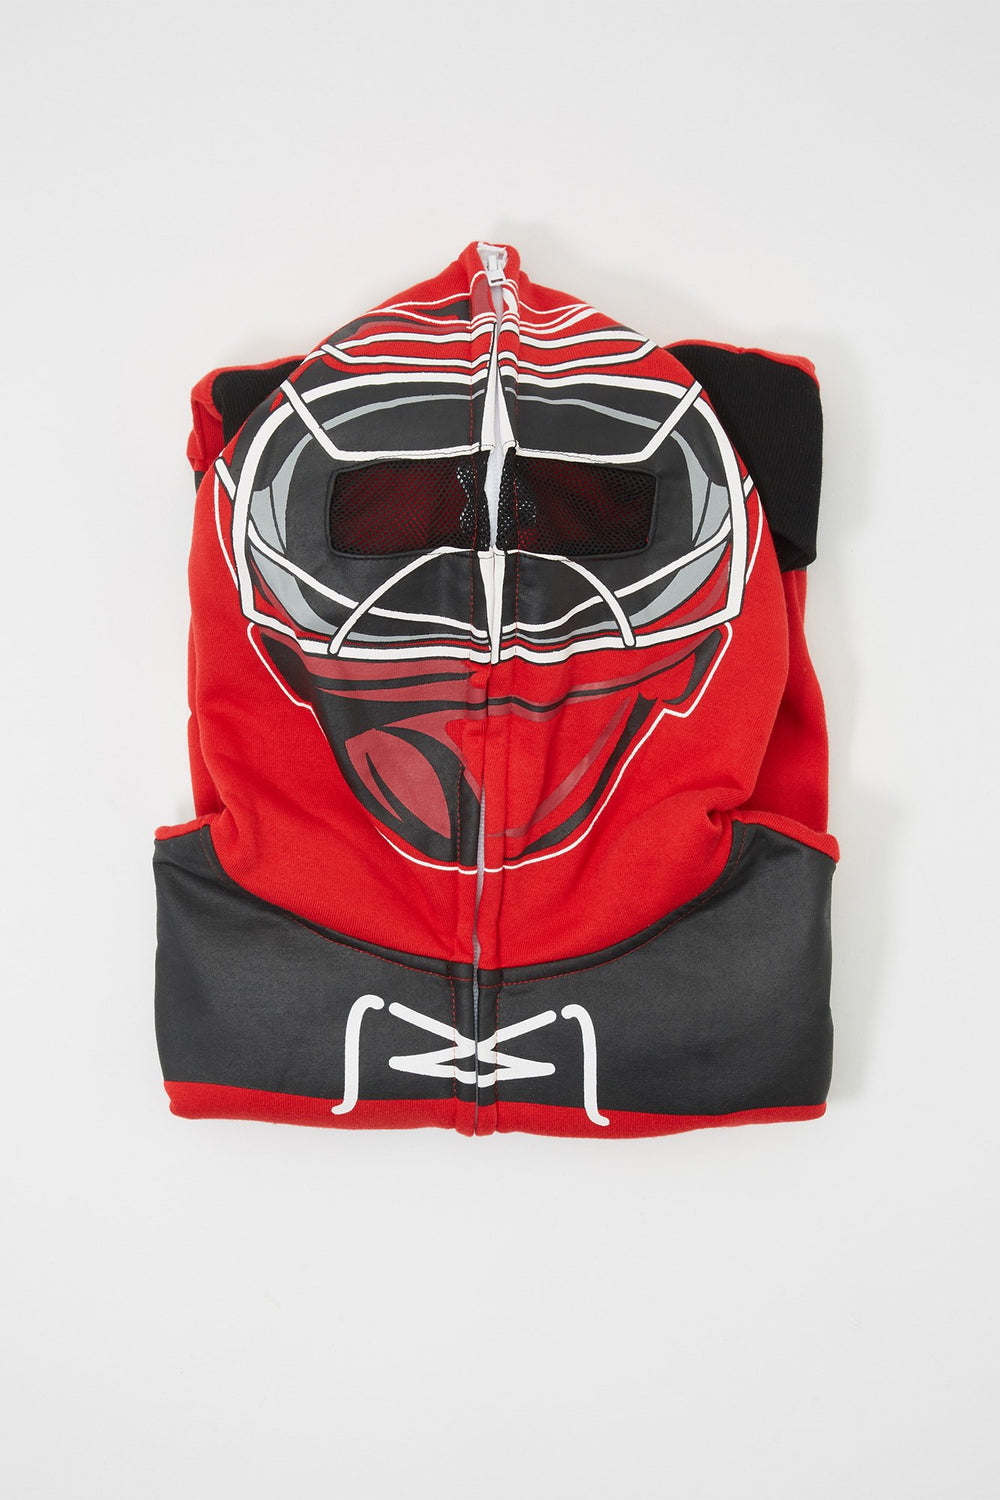 West49 Boys Team Canada Goalie Peeper Red